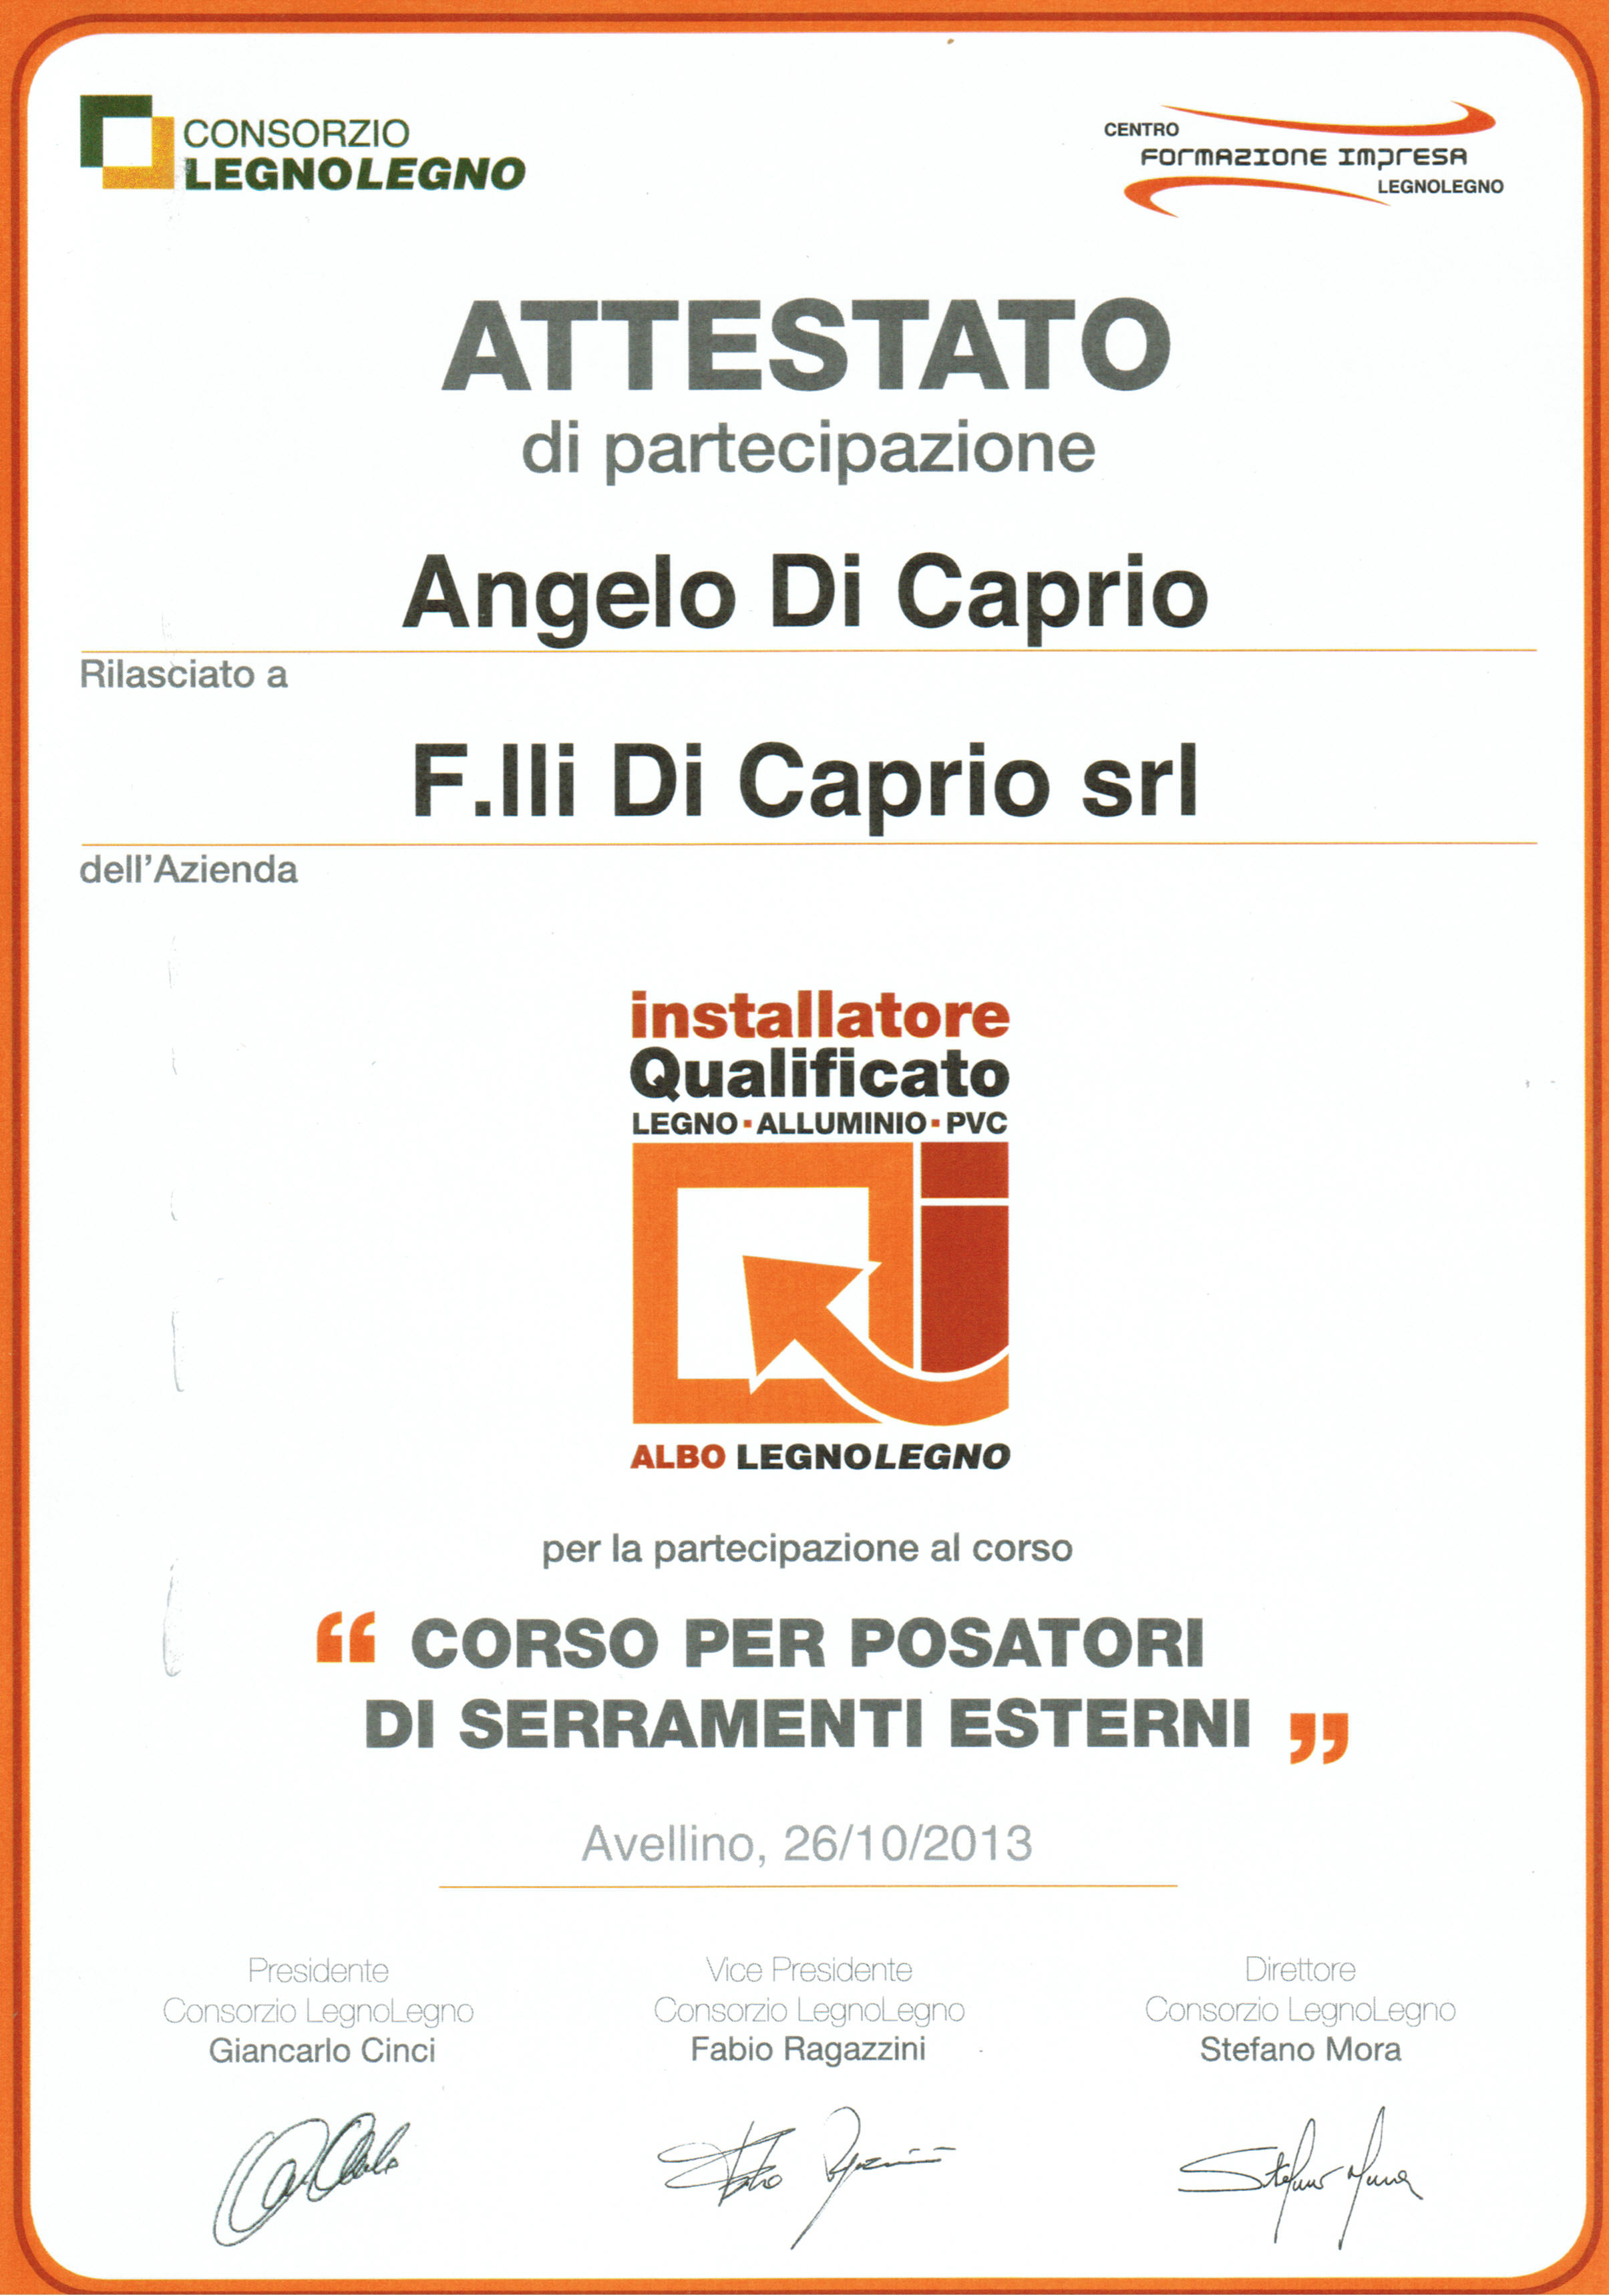 ATTESTATO ANGELO